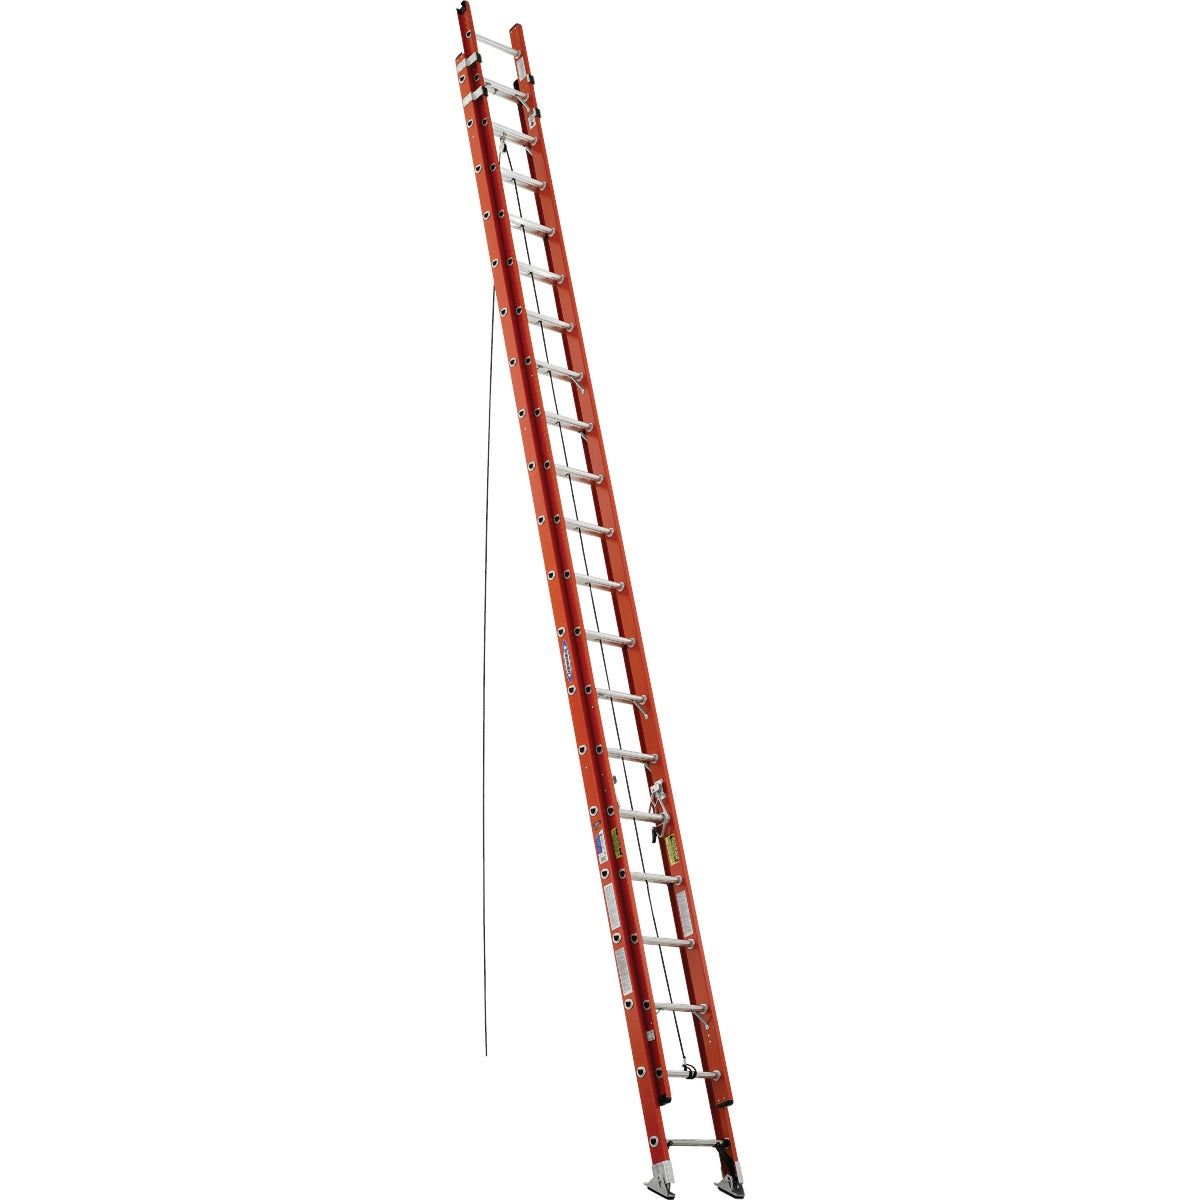 T-1A 40' FBGL EXT LADDER - D6240-2 by Werner Ladder